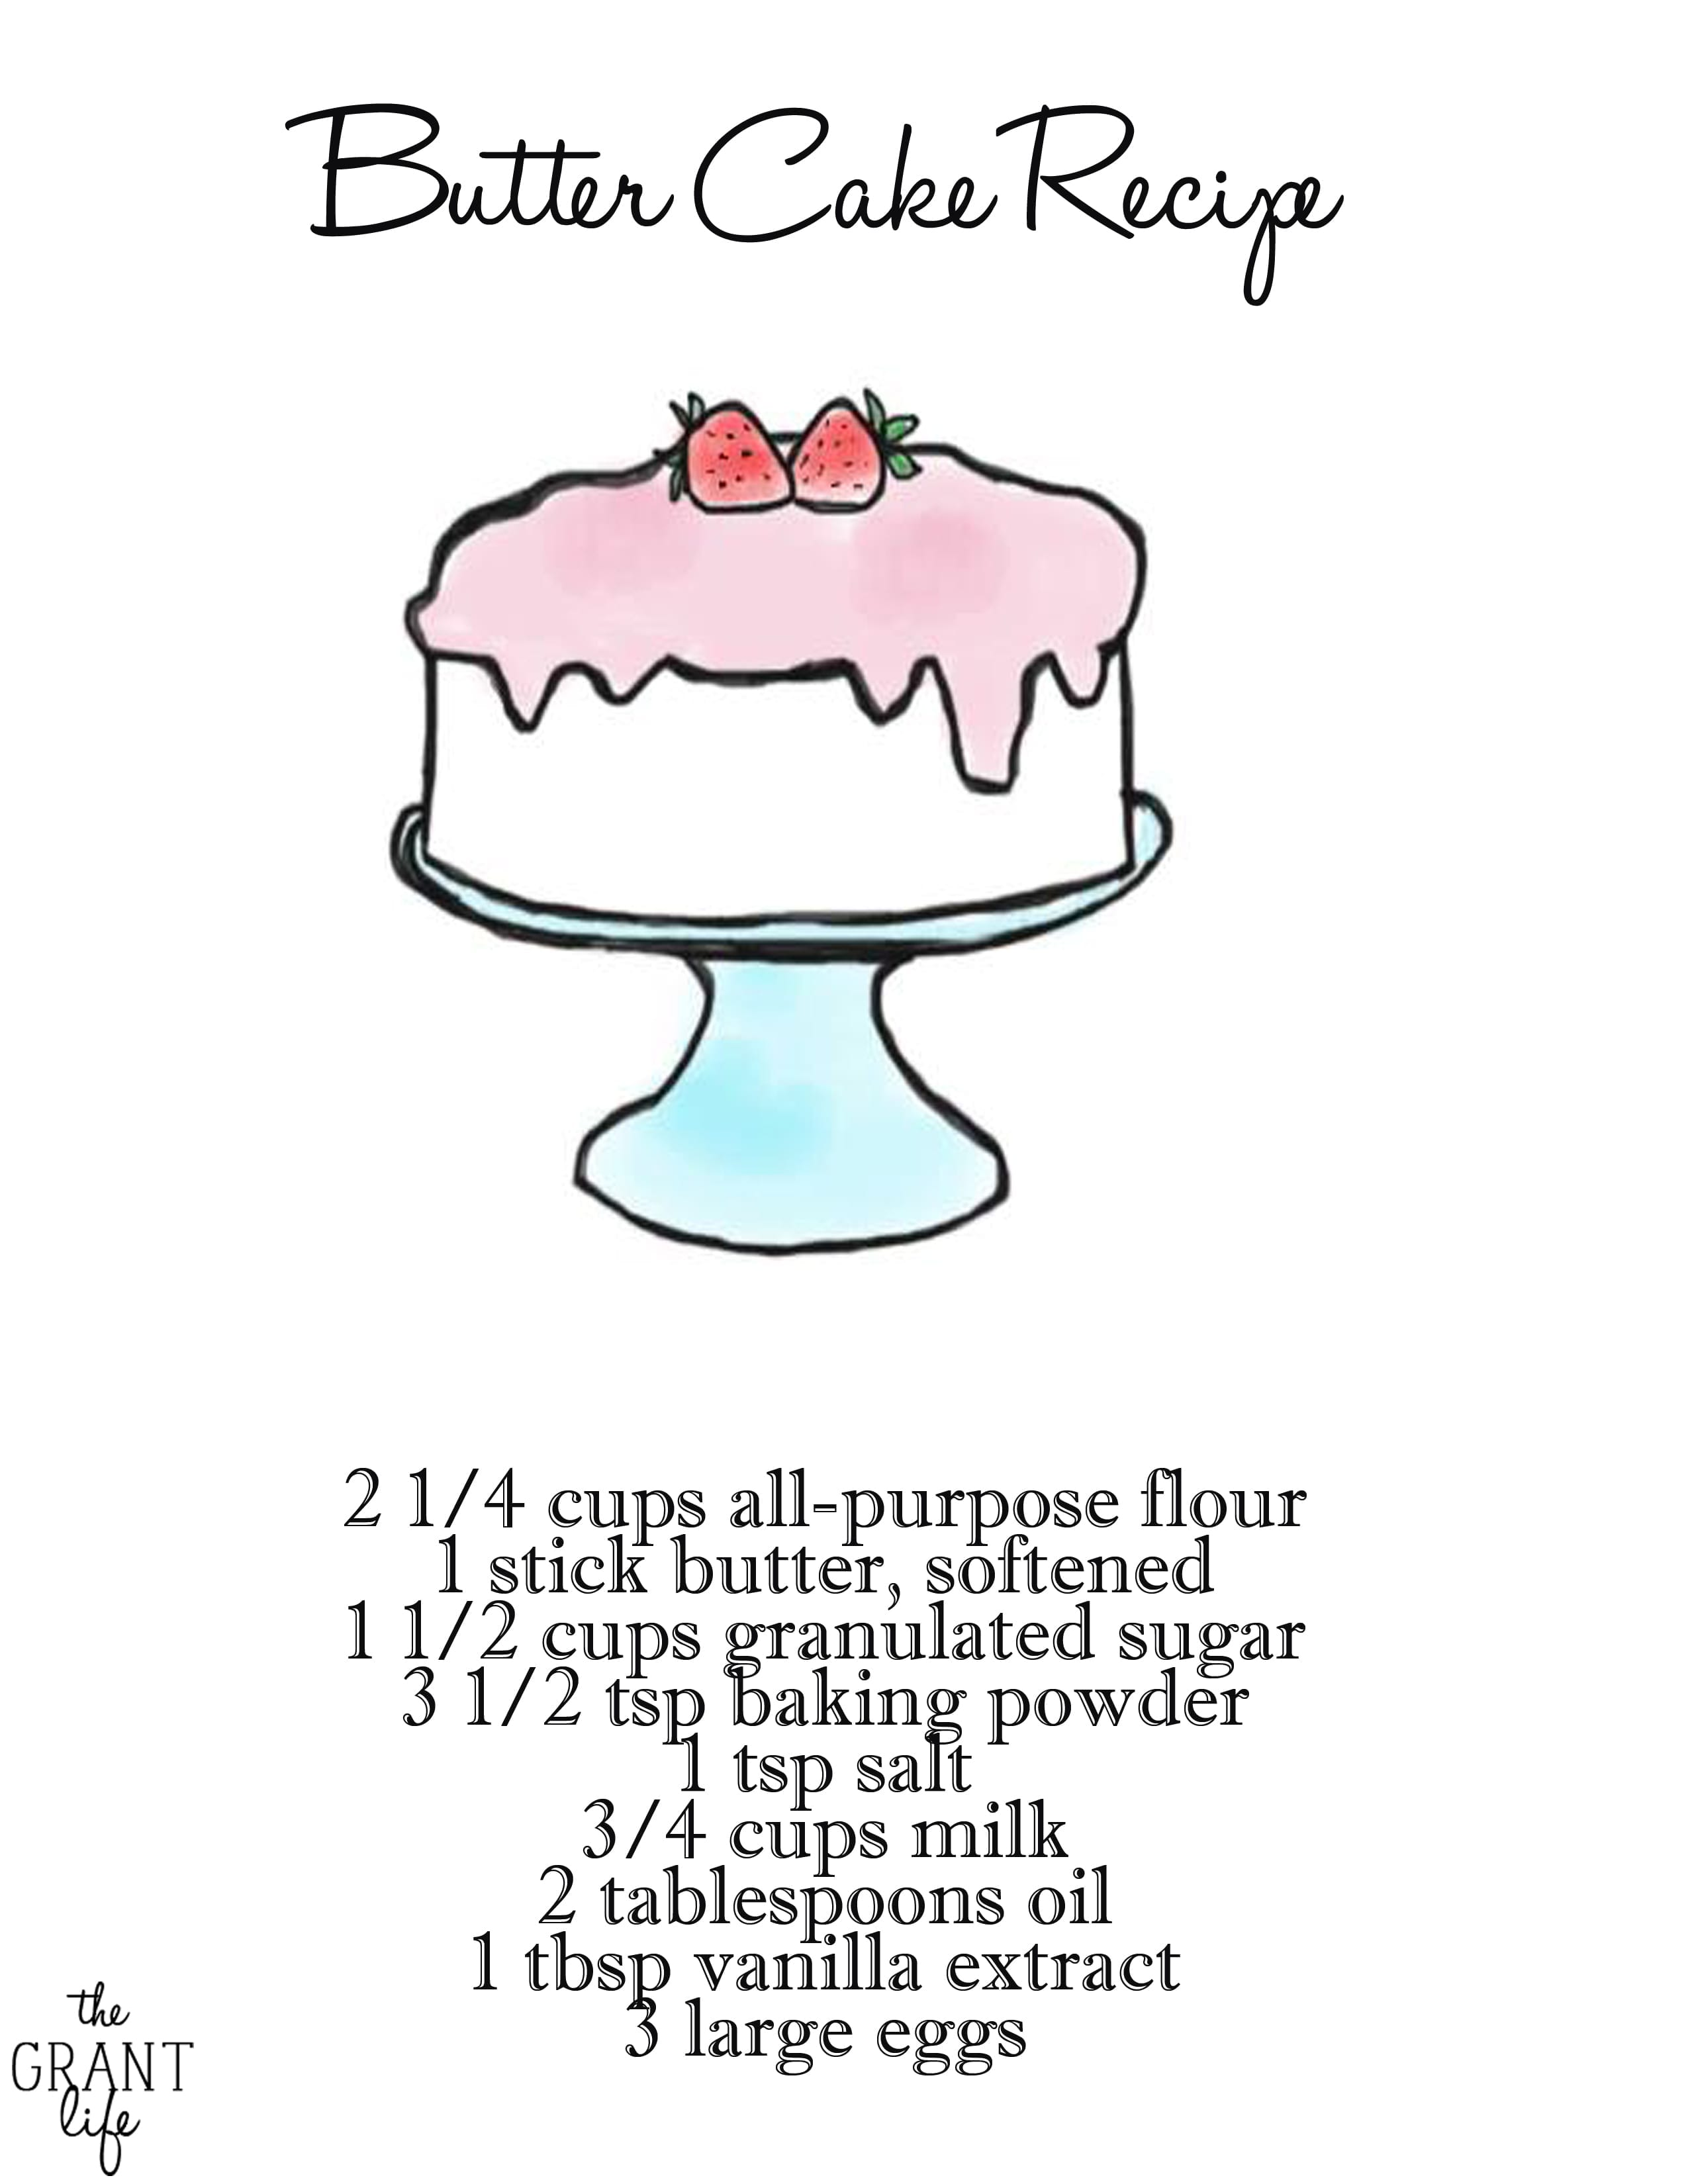 photograph regarding Printable Cake called Simple Cake Recipe with Printable - mother tends to make evening meal